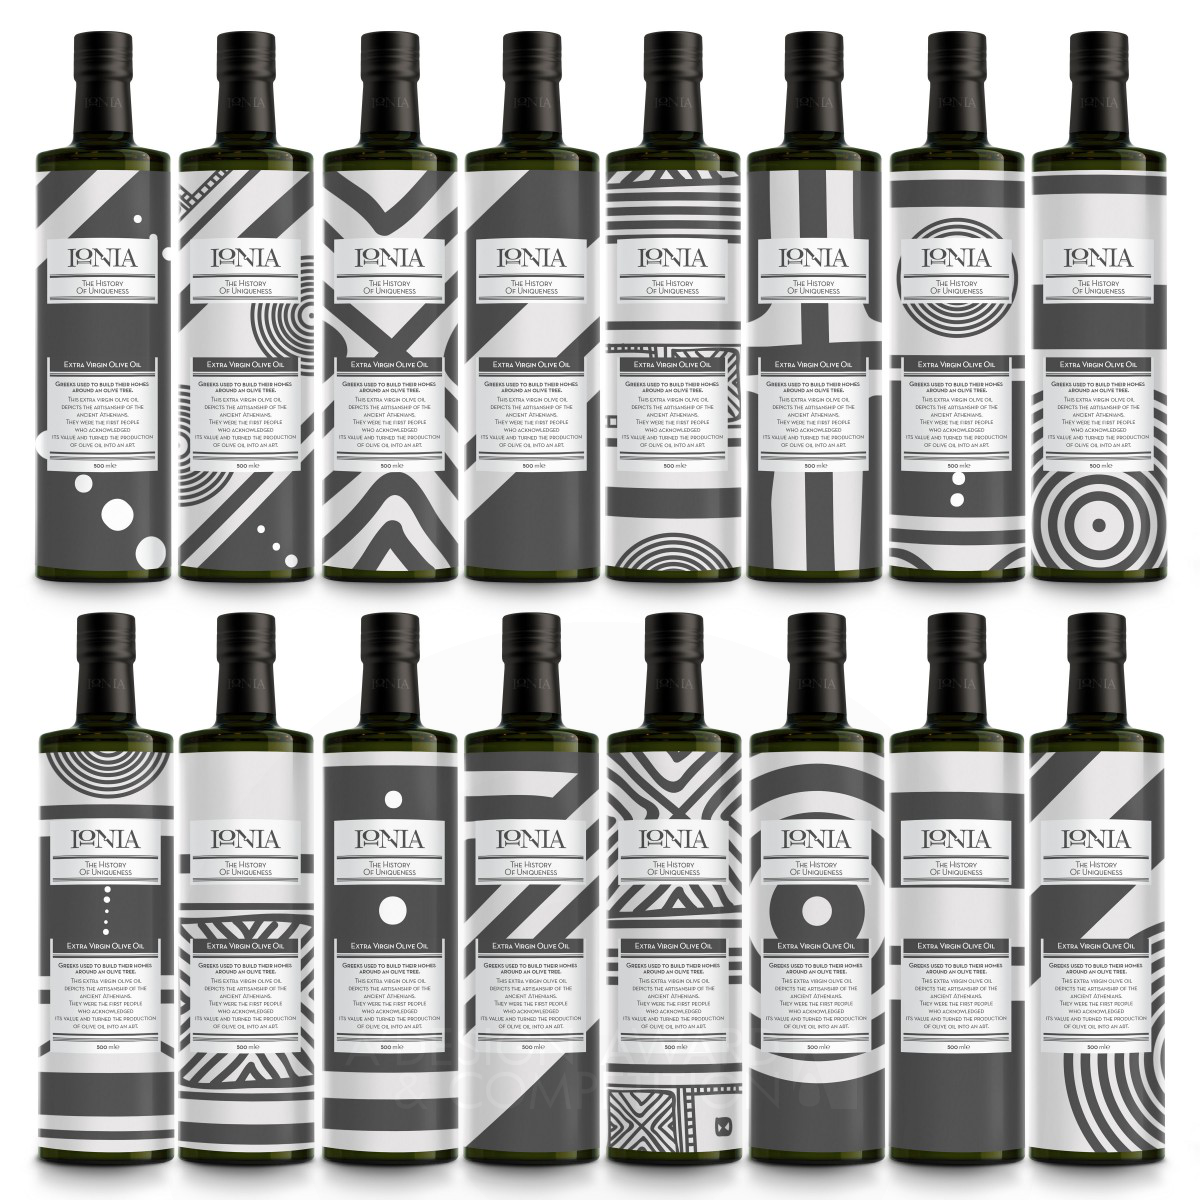 Ionia Olive oil packaging